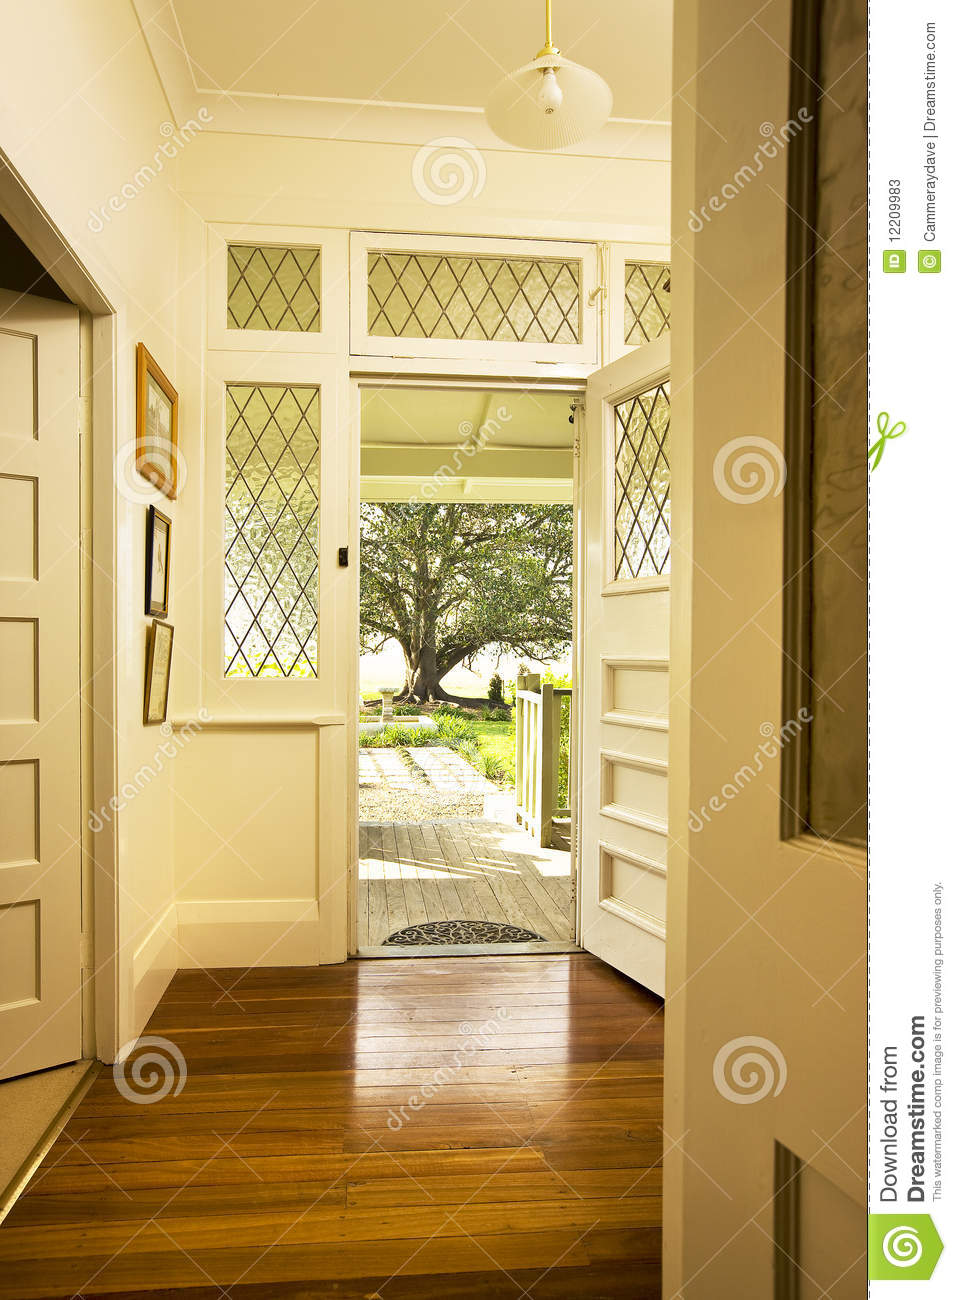 Front door entrance interior stock photos image 12209983 Front entrance ideas interior